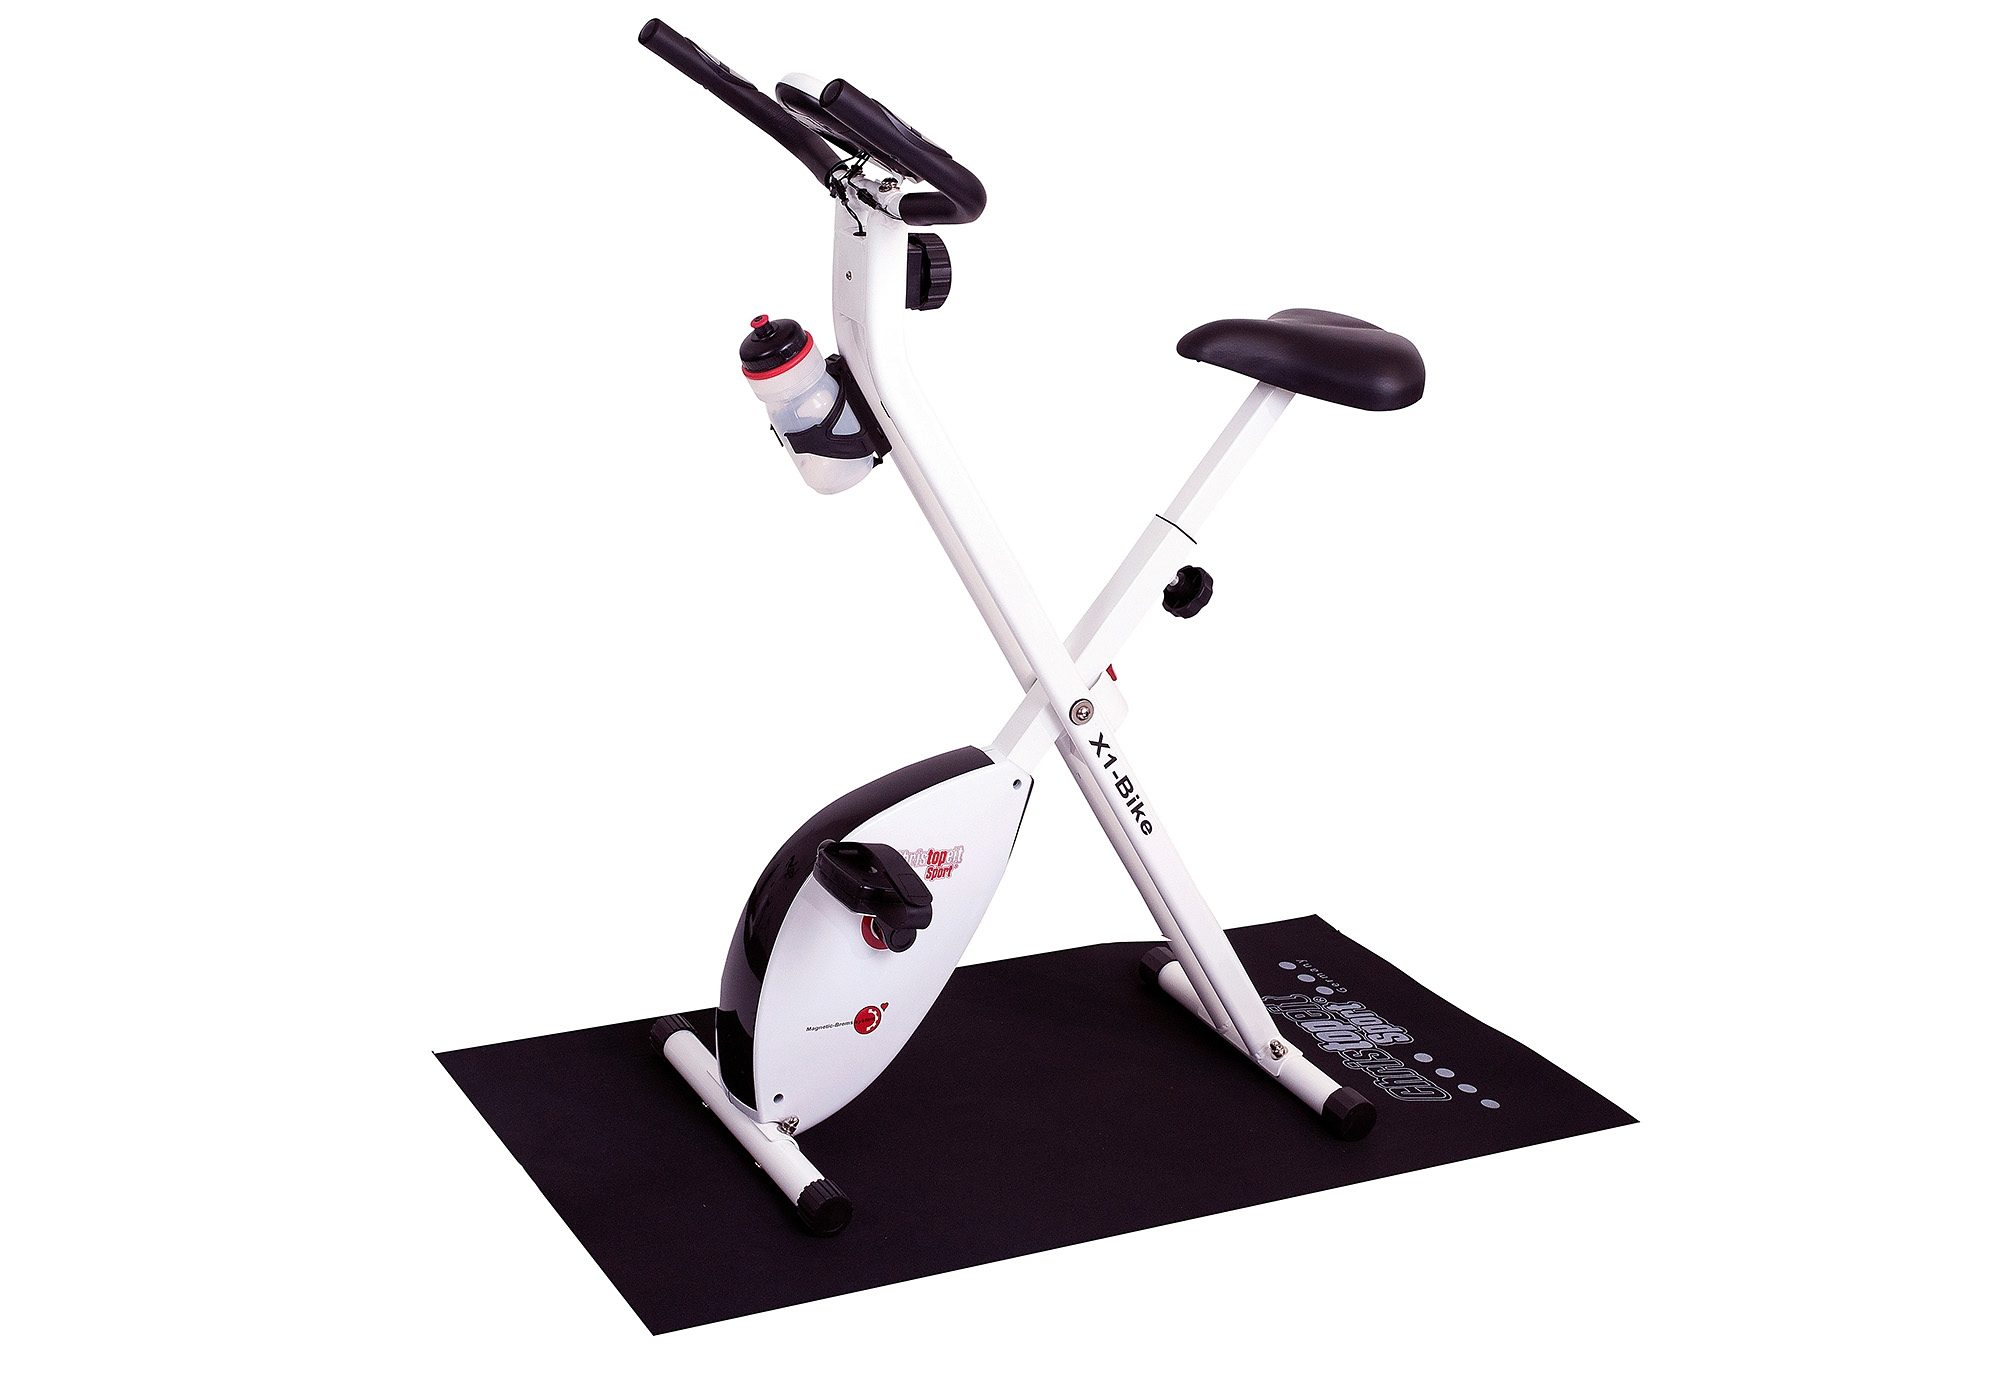 Heimtrainer-Set inkl. Unterlegmatte, »X-1 Bike«, Christopeit Sport®